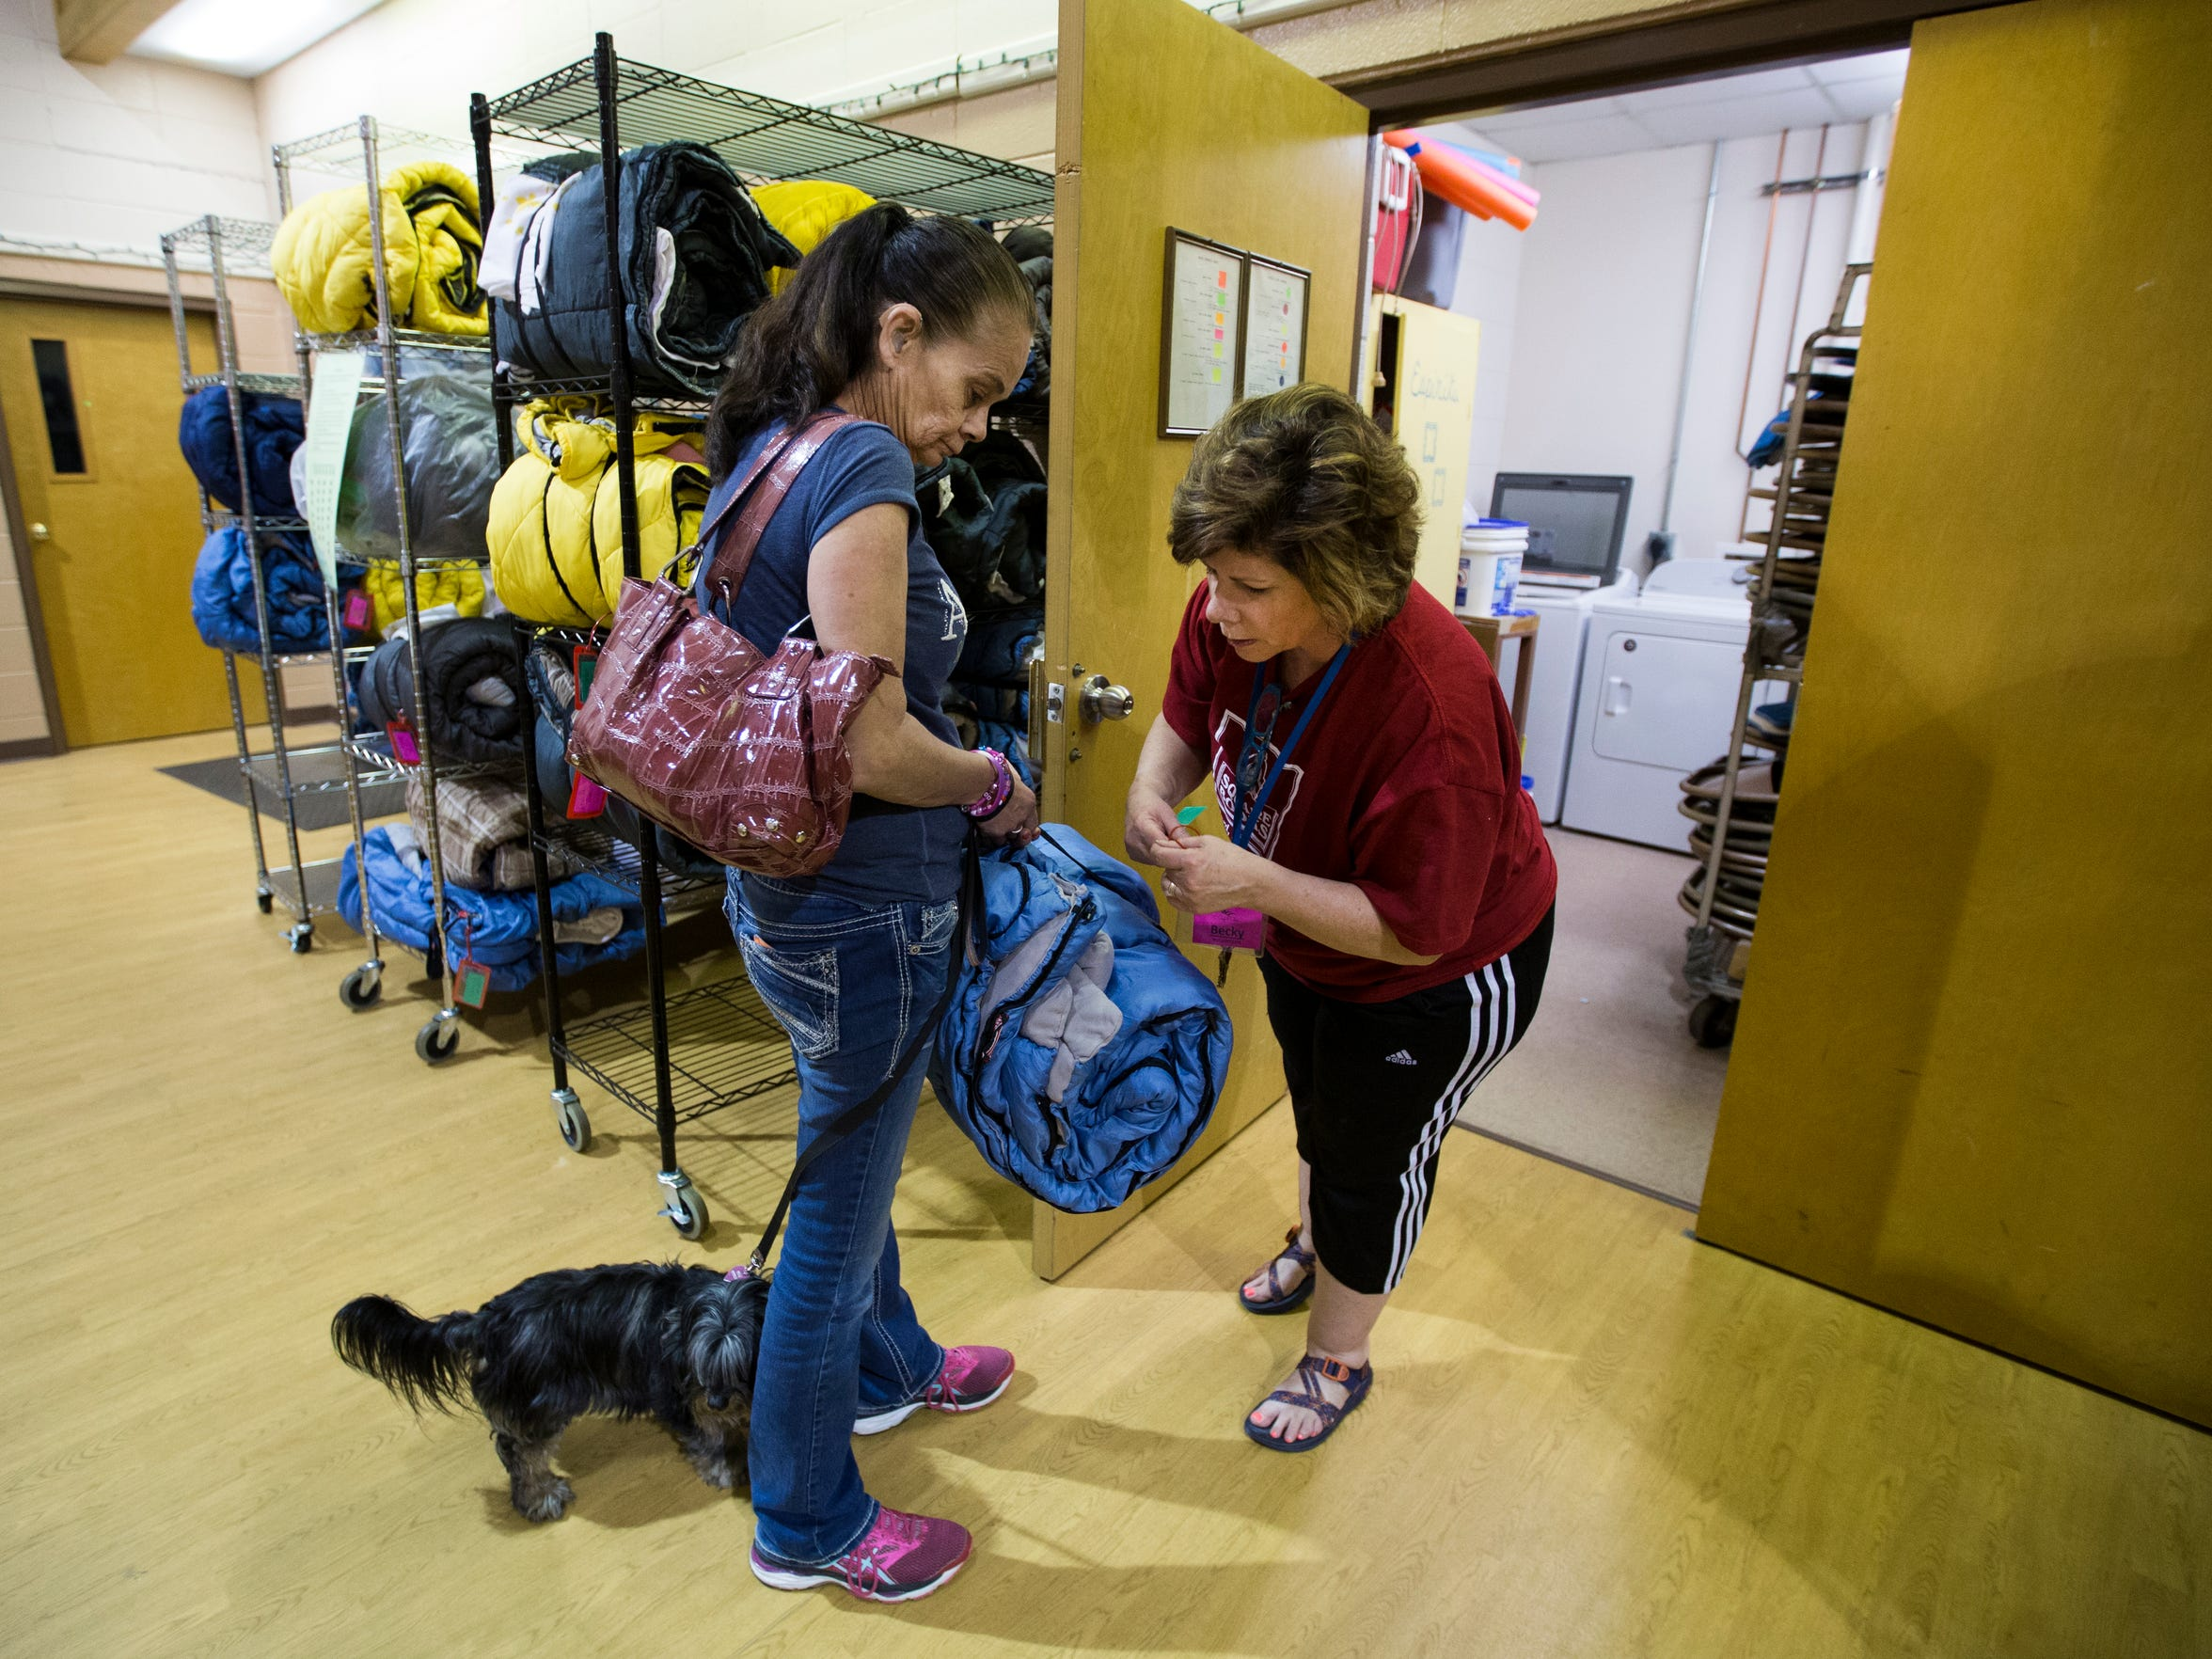 Safe to Sleep volunteer Becky Solari retrieves a sleeping bag for Julie Starbuck, 51, on Tuesday, April 24, 2018.